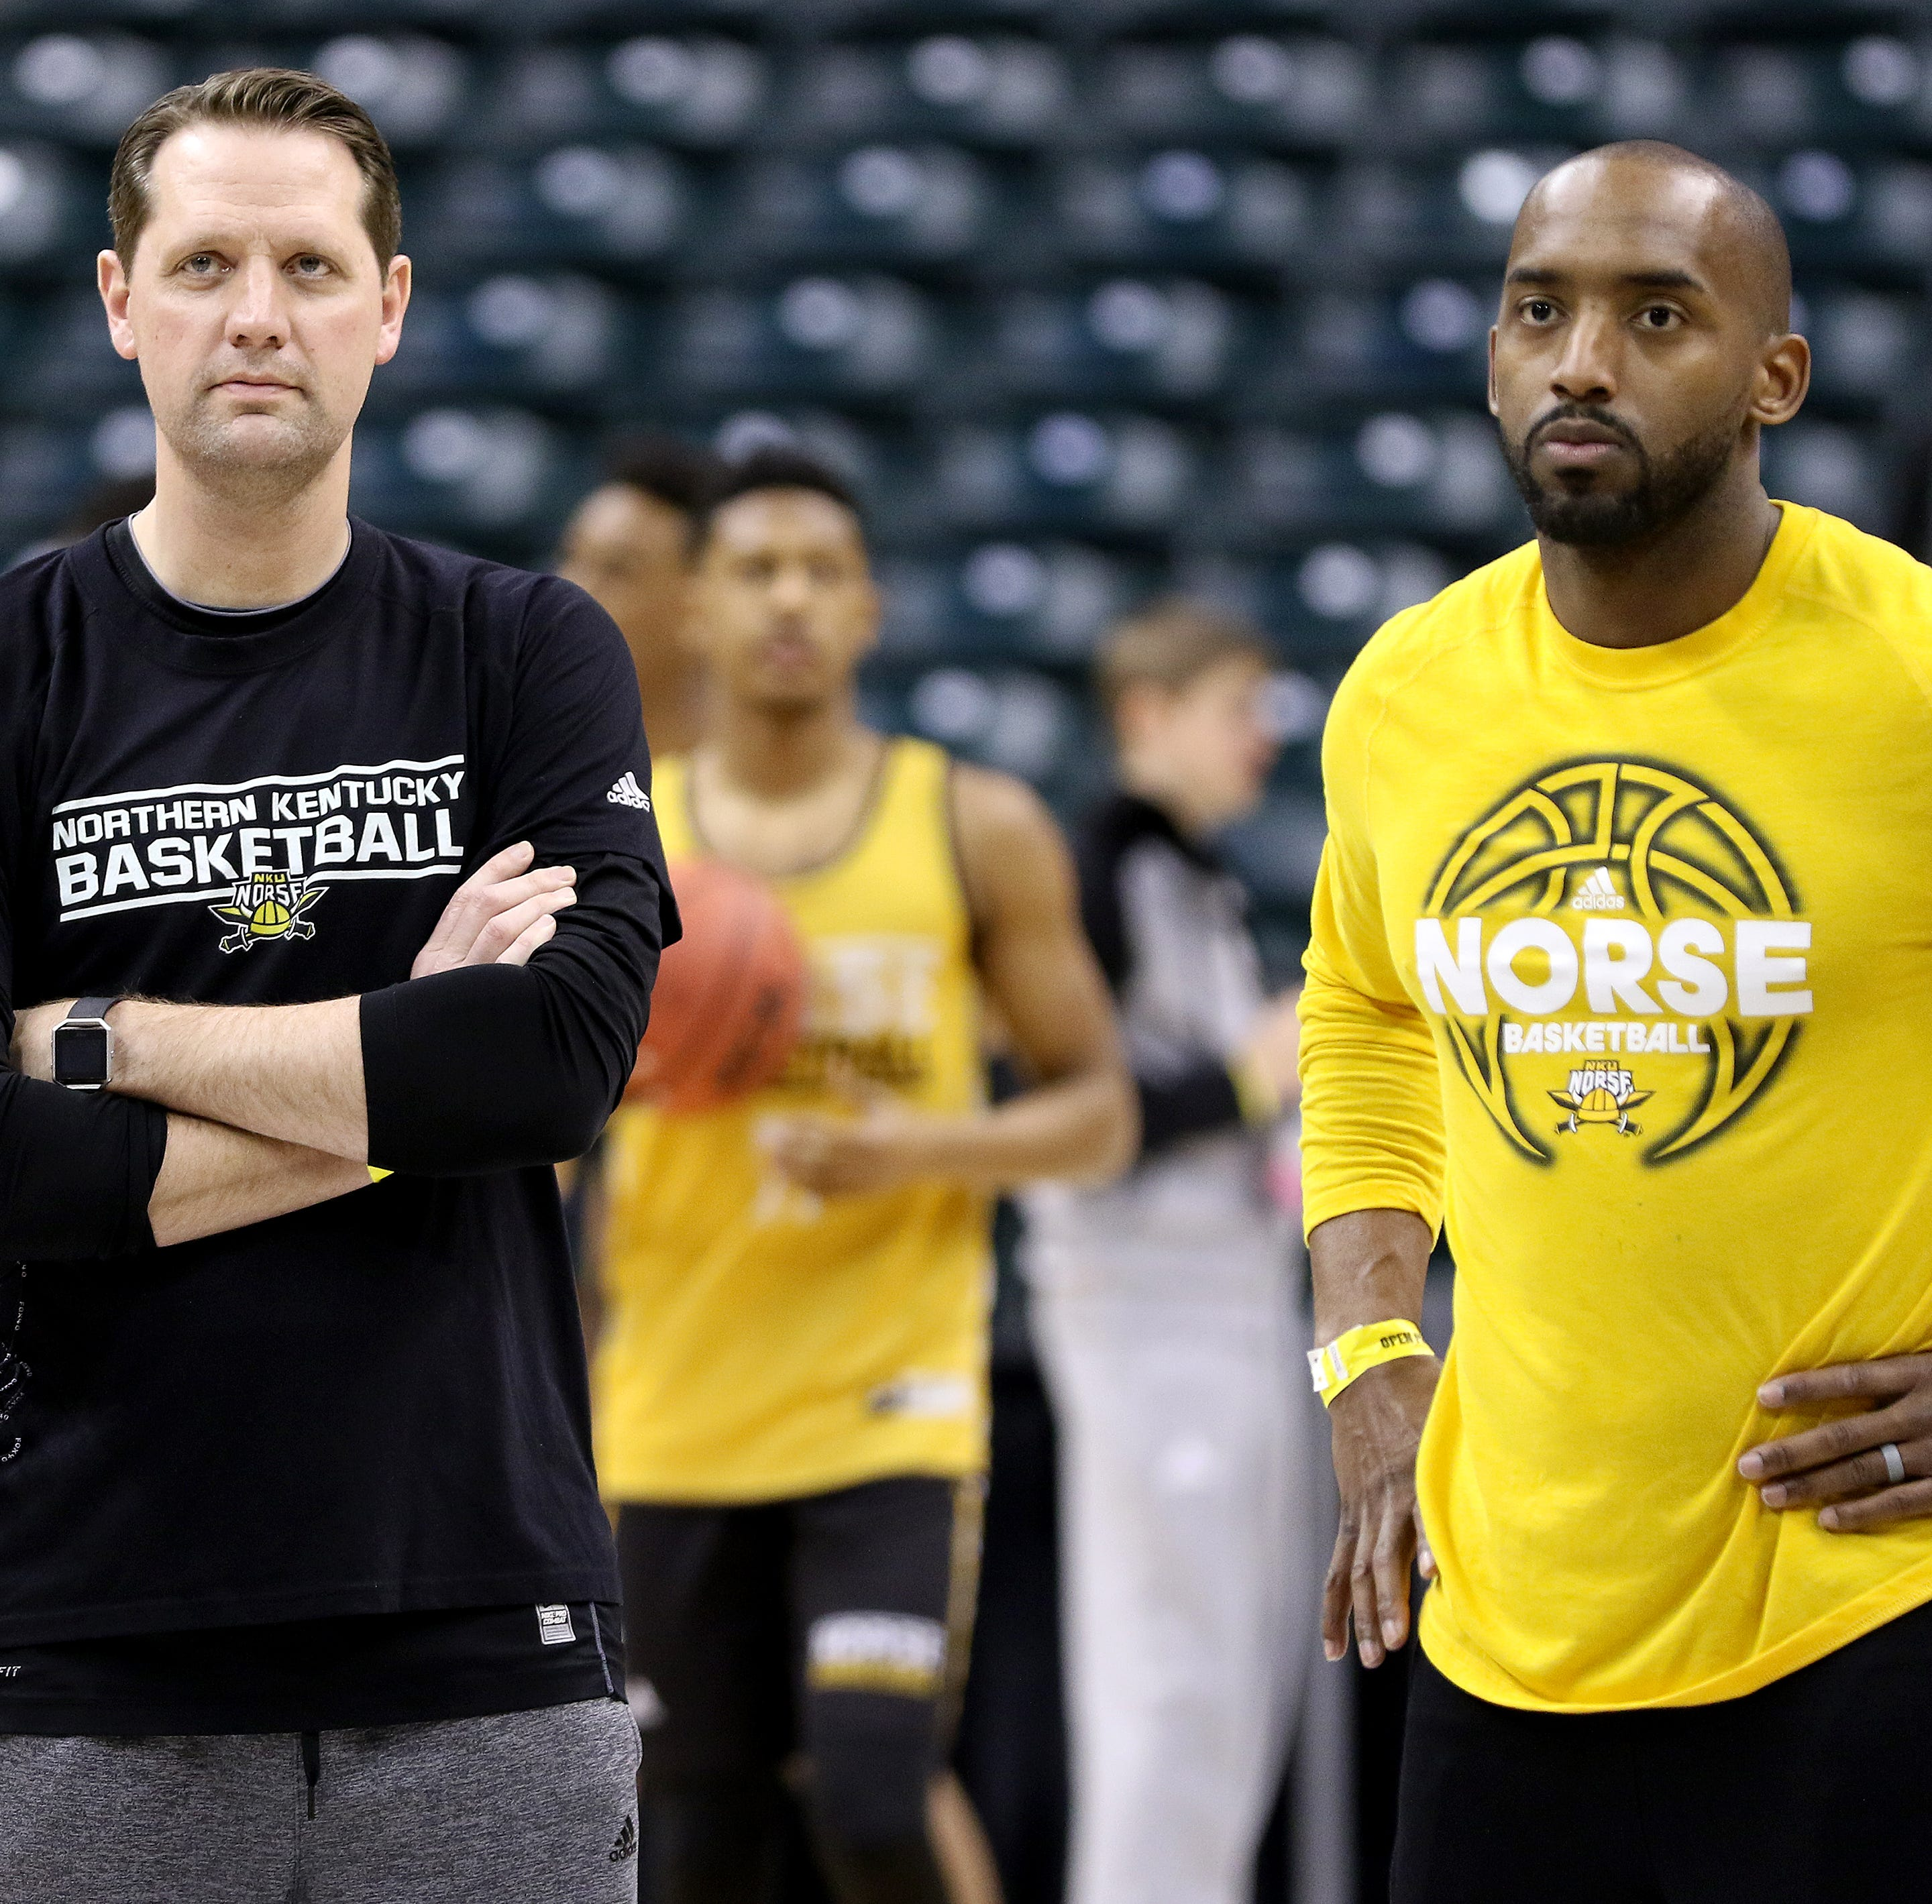 John Brannen: Social media reactions to UC Bearcats hiring NKU Norse head coach